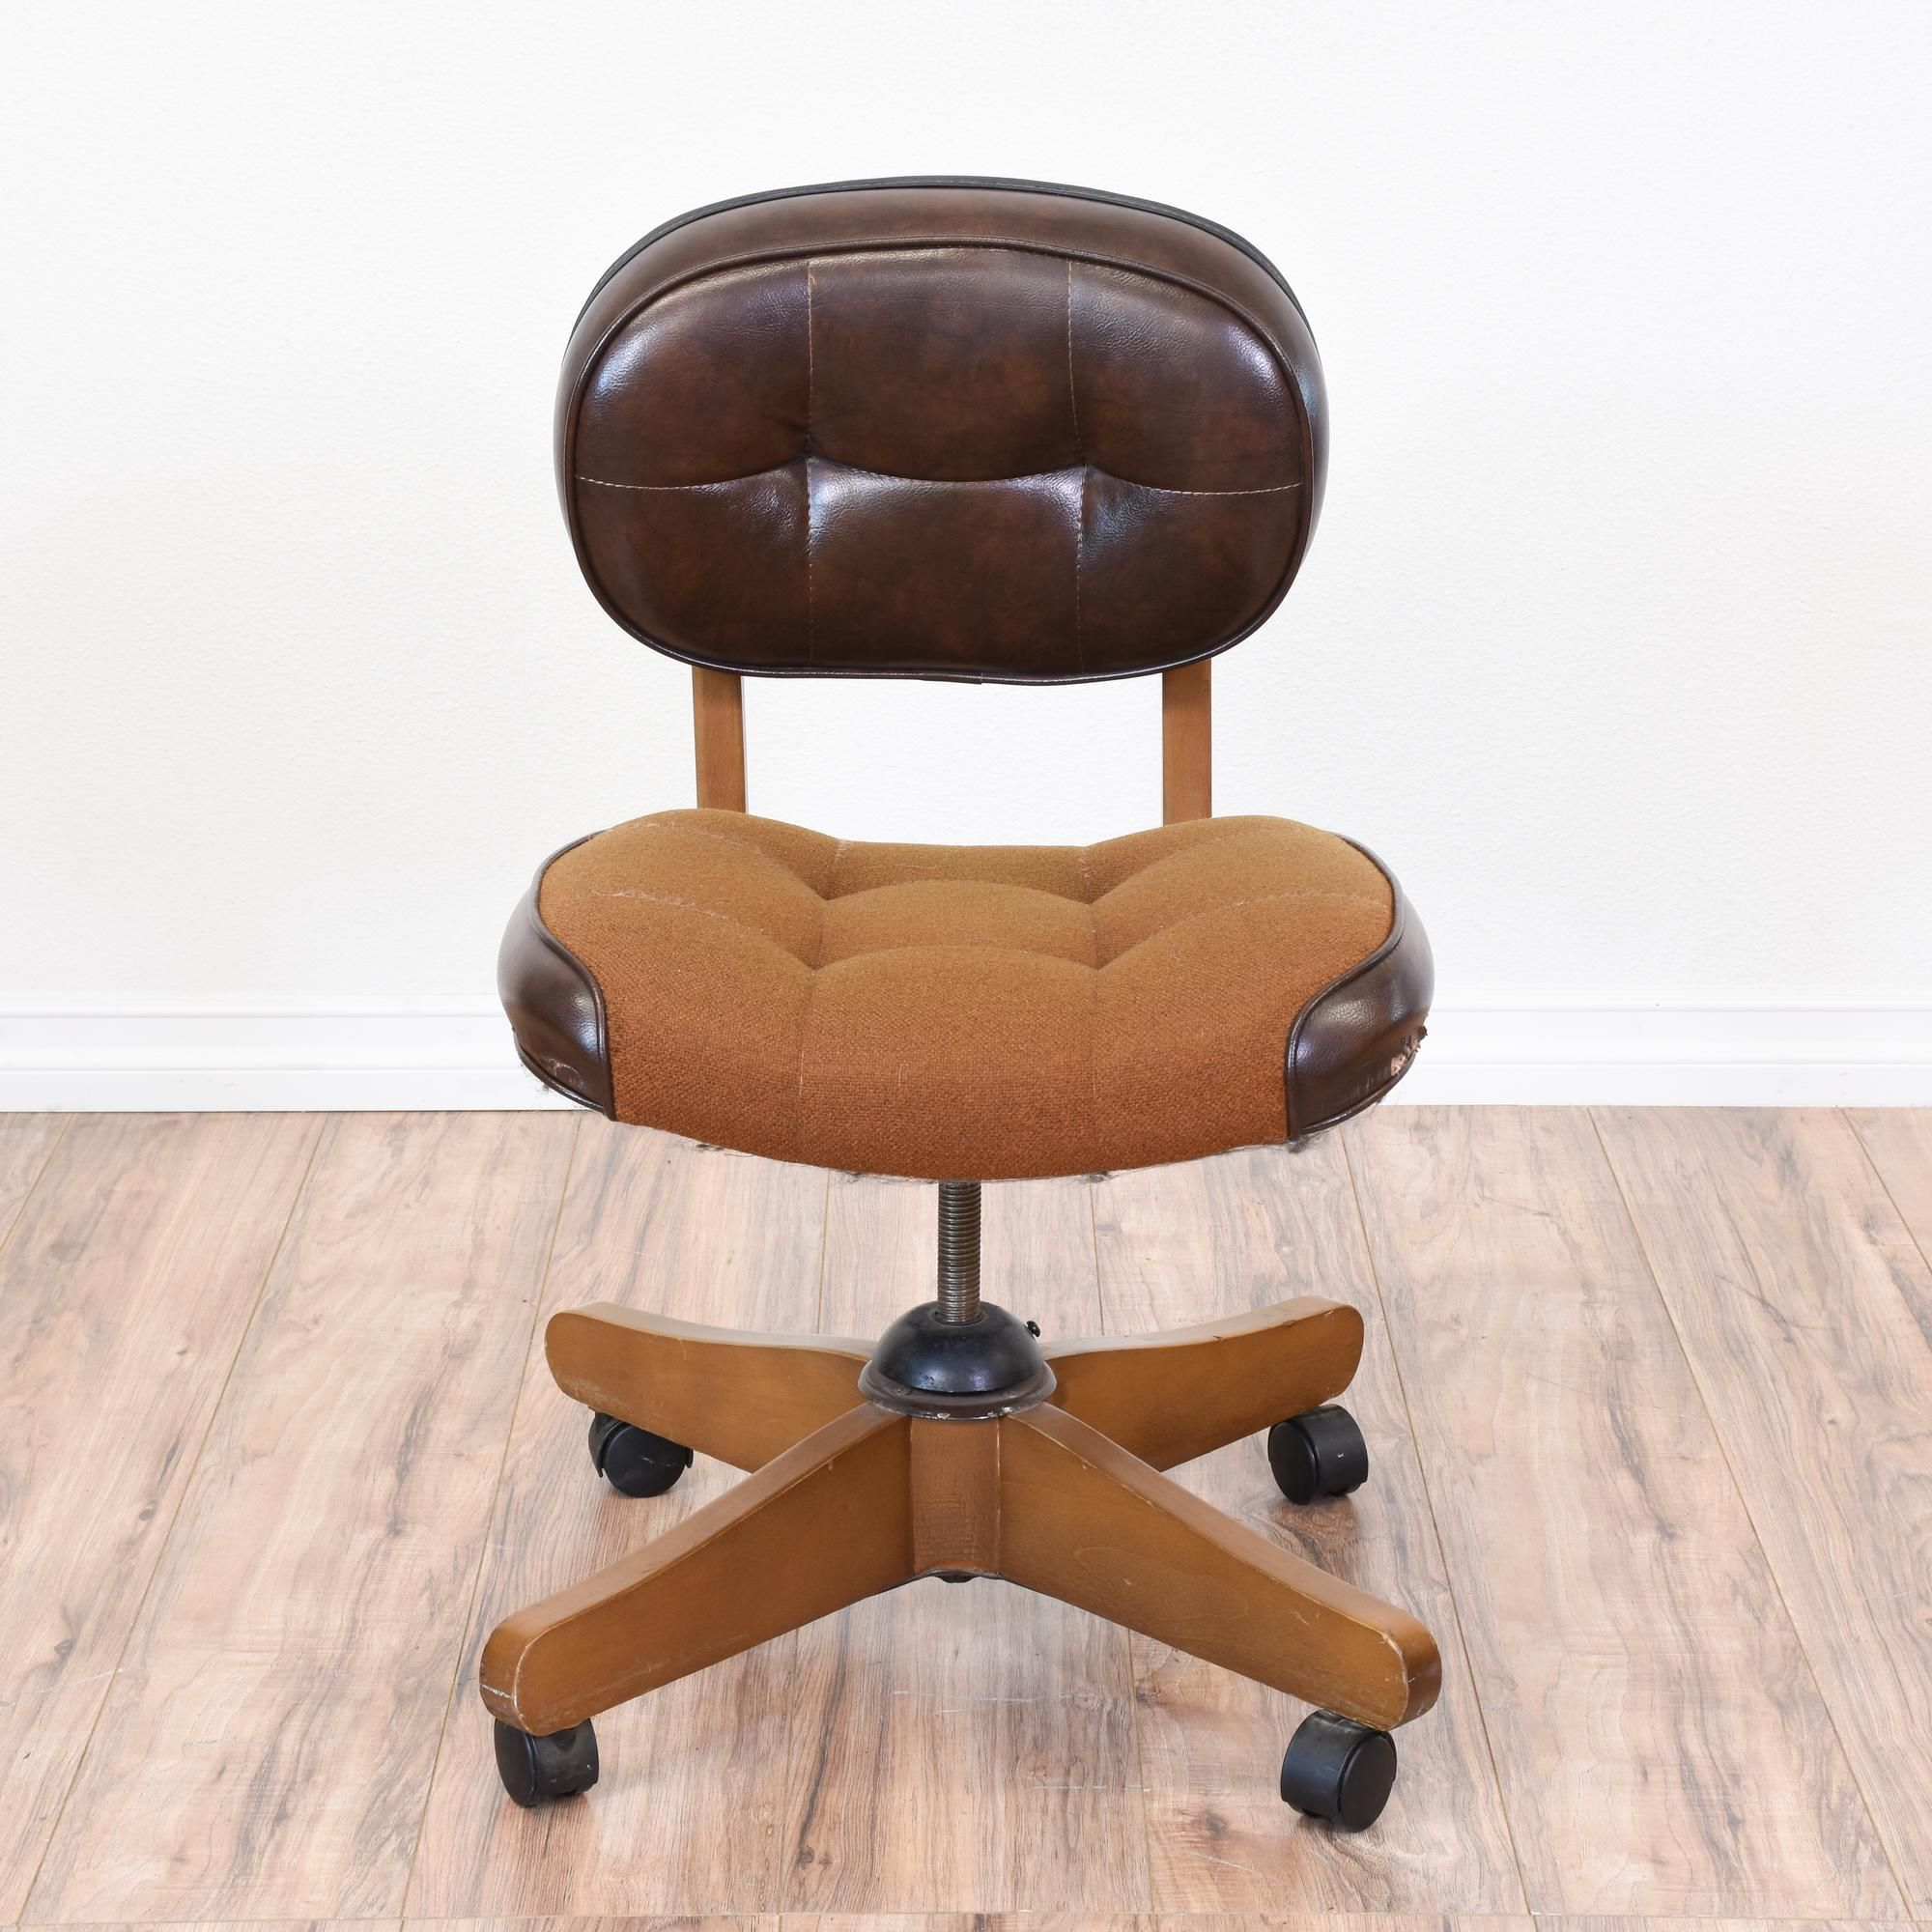 Cool Retro Office Chair Featured In Brown Leather And Brown Tweed Fabric.  Twists To Raise And Lower Seat Height. Some Wear, Pictured.